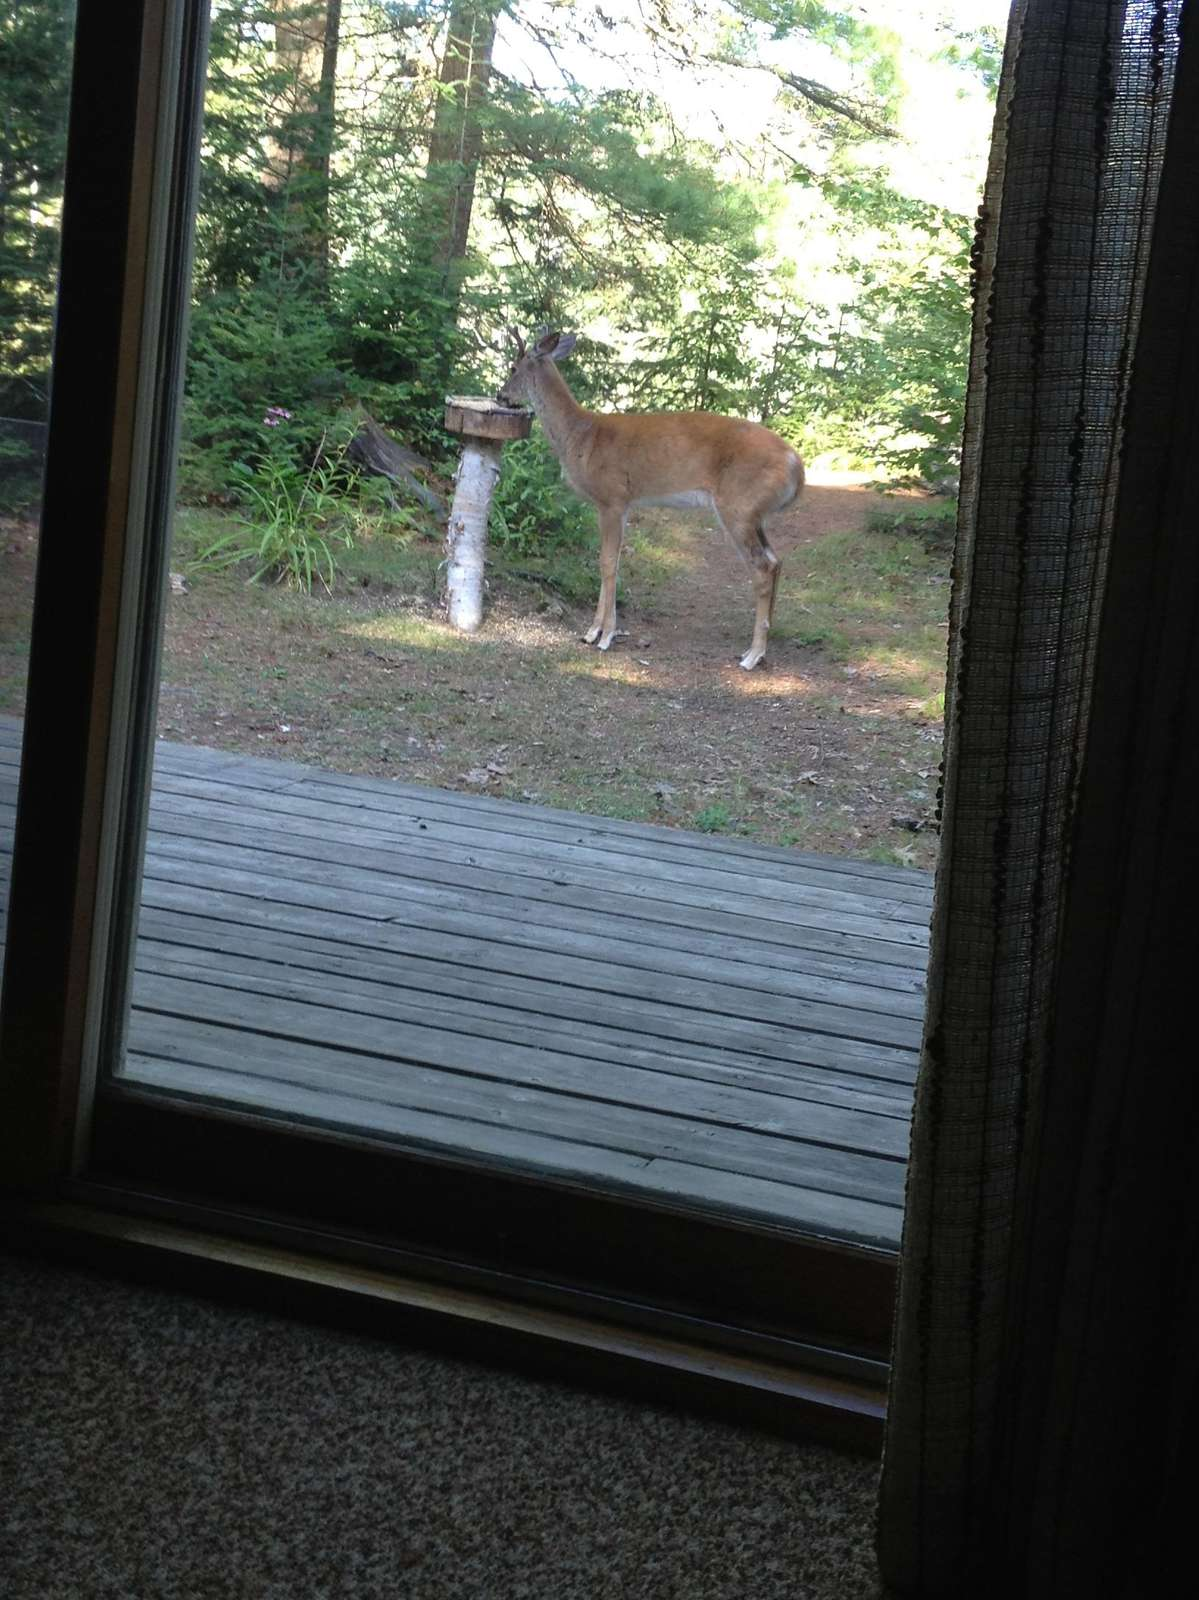 A deer visiting the property